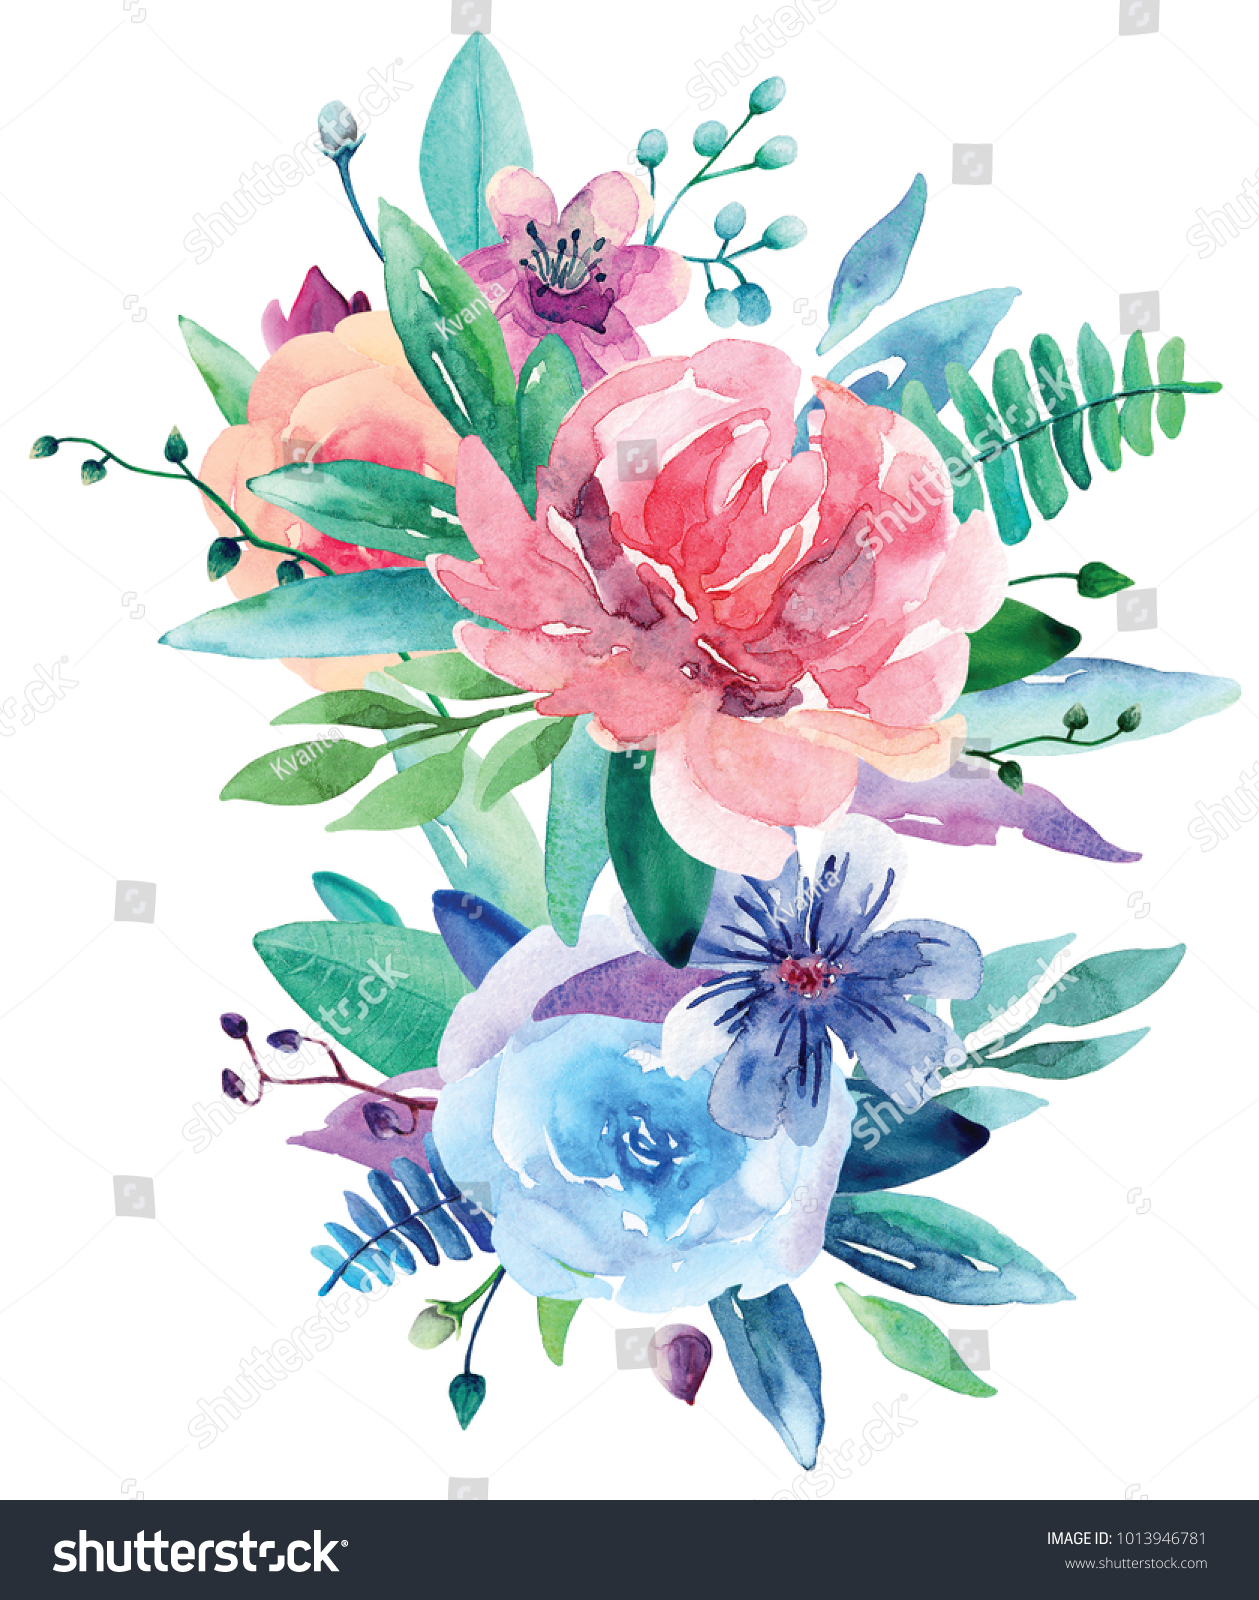 Watercolor floral bouquet clip art pink stock illustration watercolor floral bouquet clip art pink and blue flowers illustration izmirmasajfo